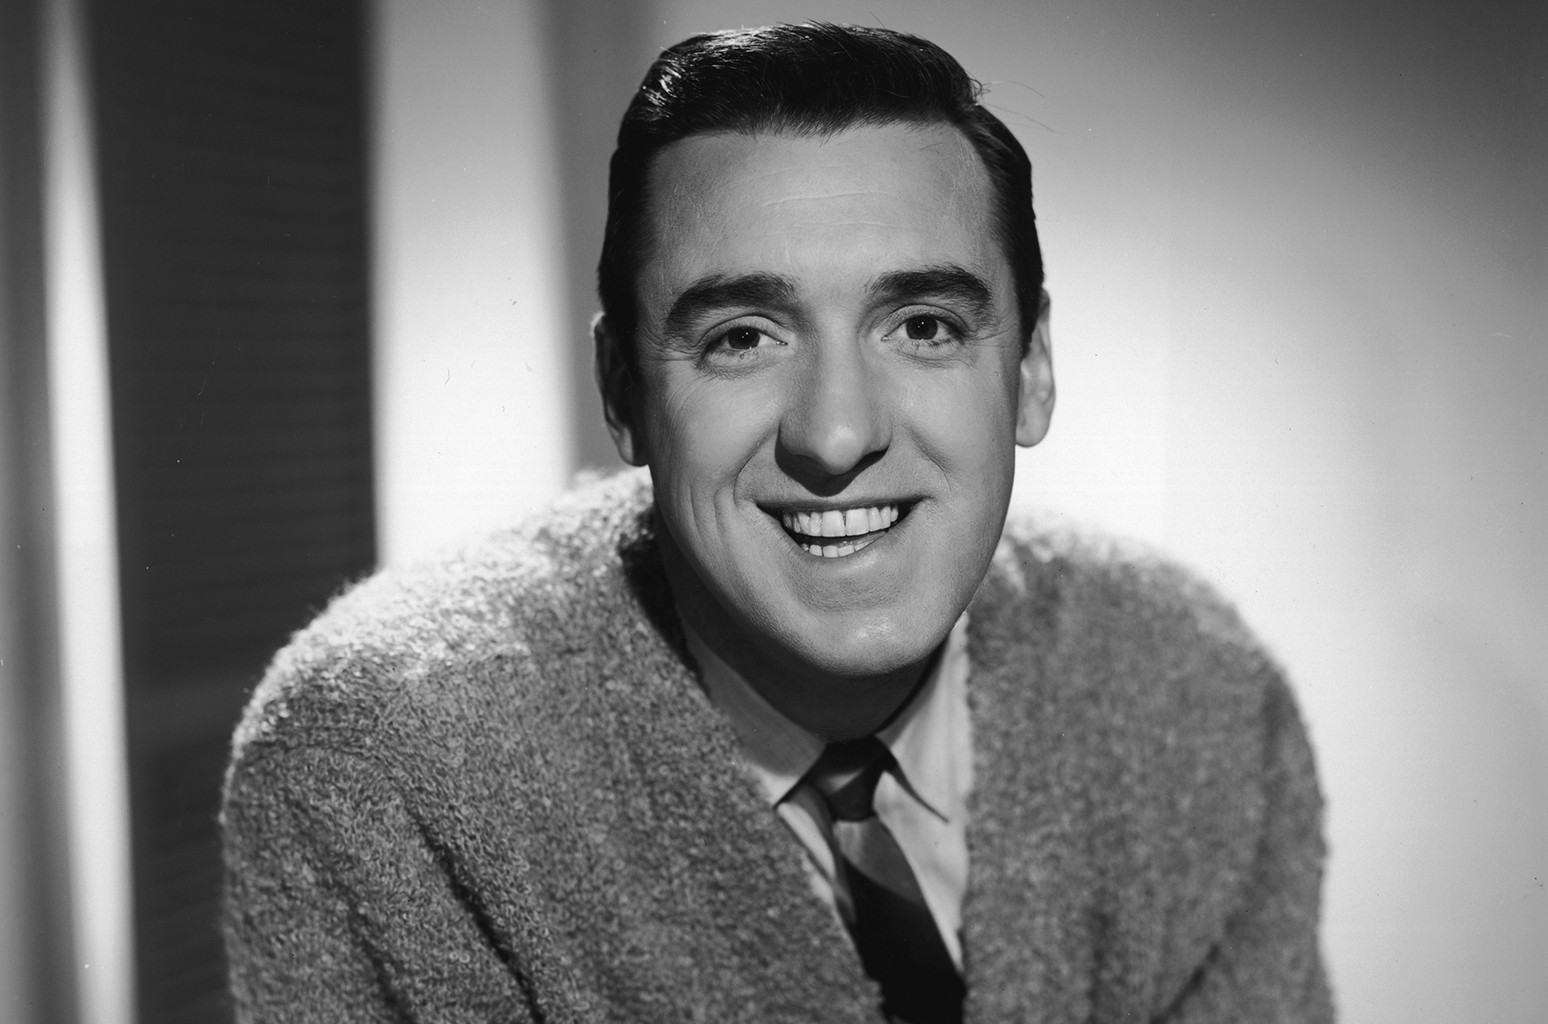 Jim Nabors The Cheerful Gomer Pyle On Two Tv Series Dies At 87 Billboard What is stan cadwallader marital status ? jim nabors the cheerful gomer pyle on